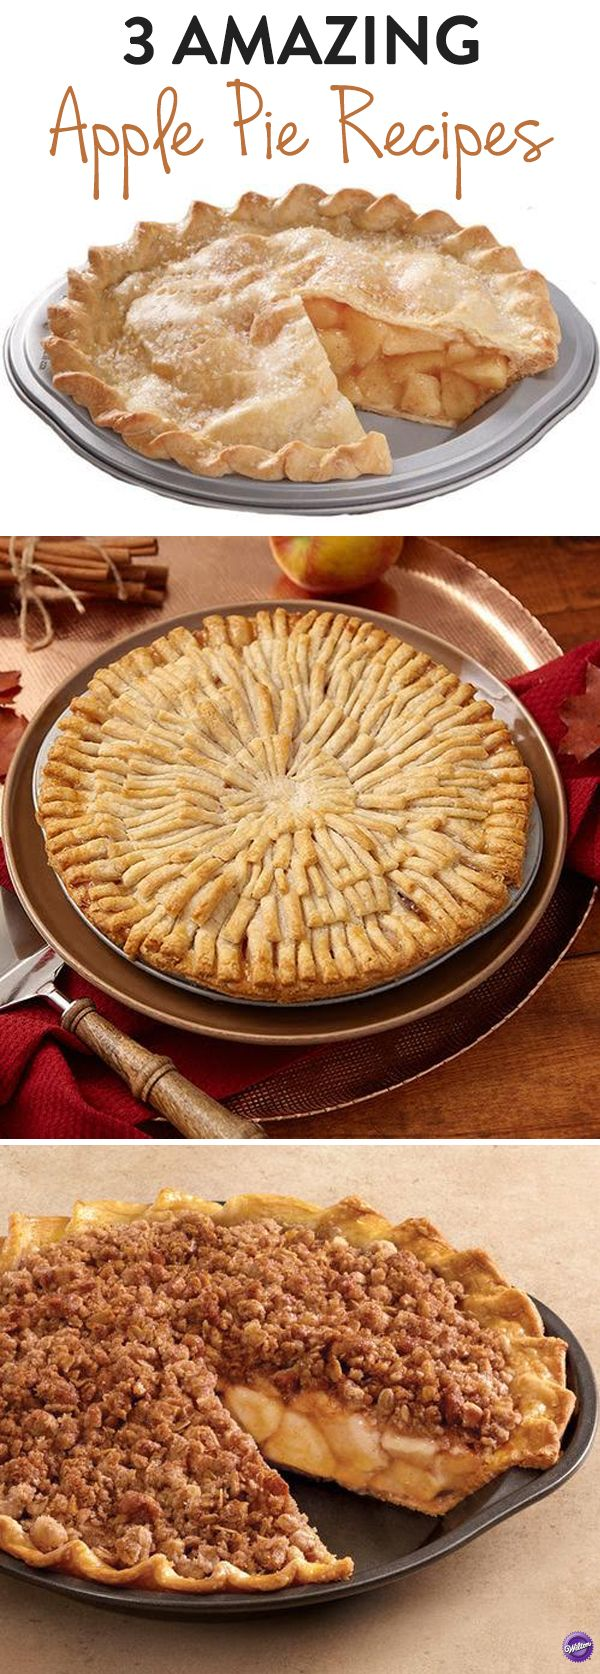 Amazing Apple Pie Recipes - Apple pie is a classic dessert that is easy to master, and there are so many ways to put a twist on the recipe to suit your personal taste. Here are 3 different recipes plus tips and tricks for how to bake the perfect apple pie!